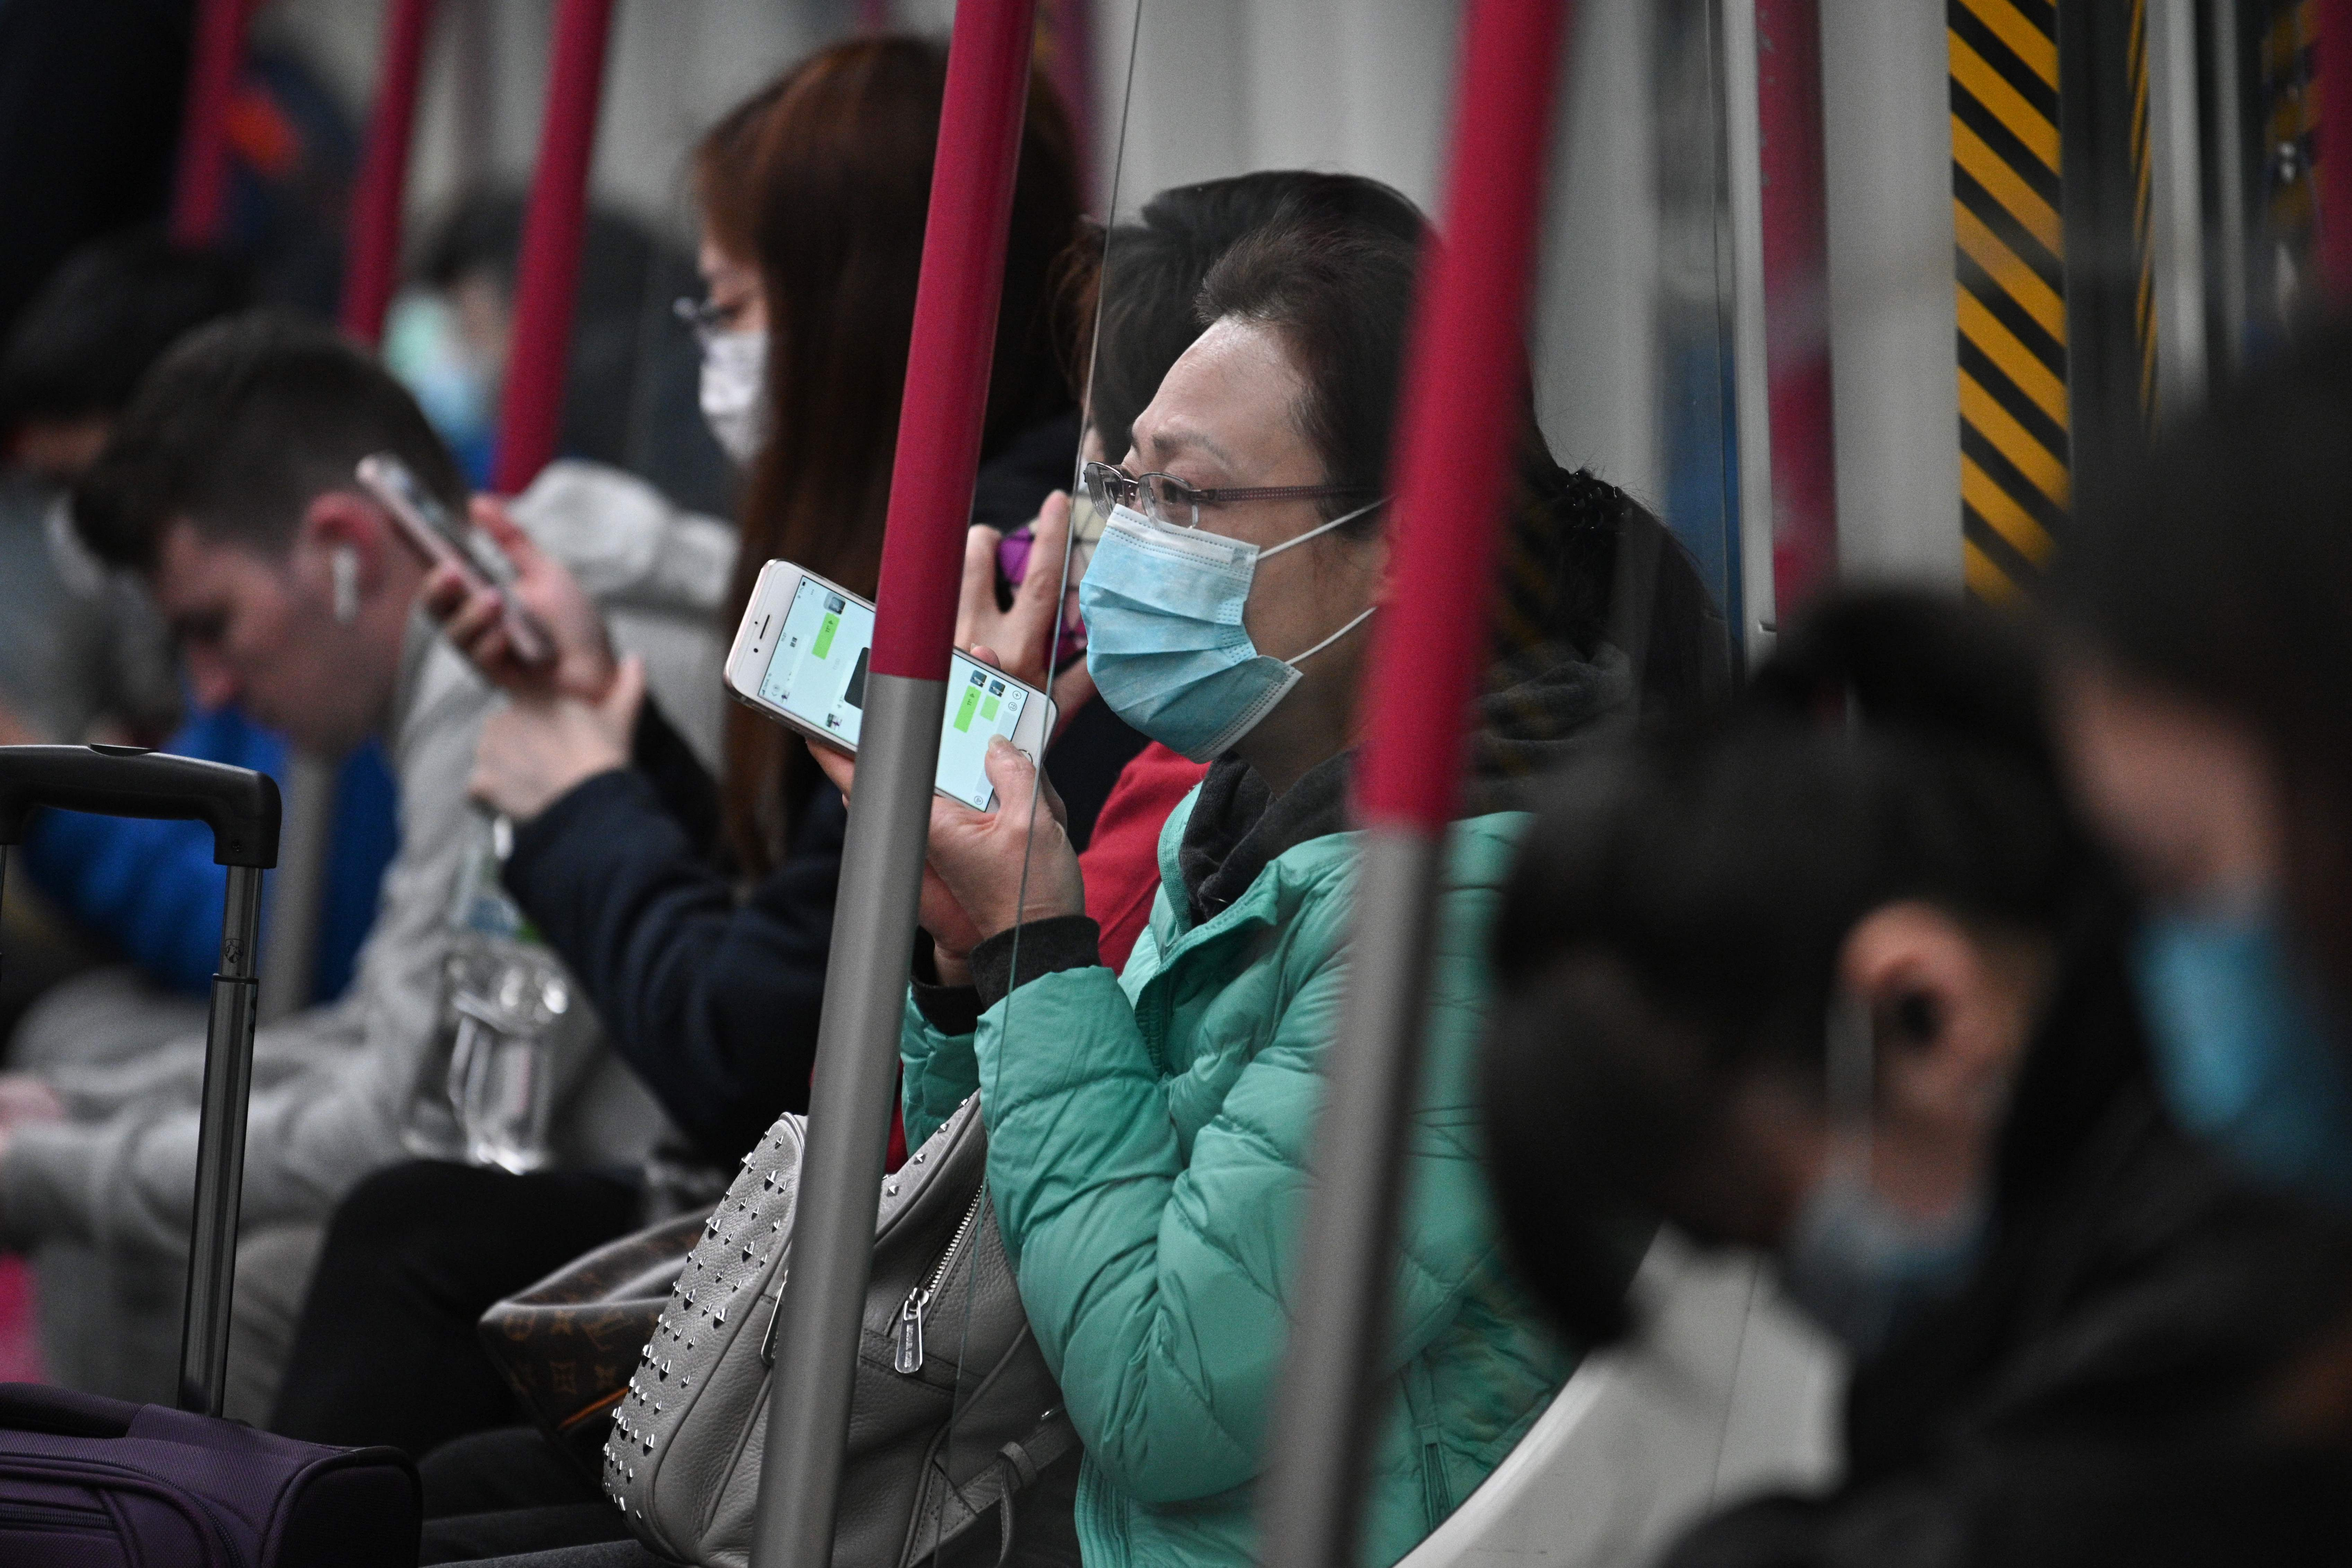 Commuters on the subway in Hong Kong on February 4, 2020.